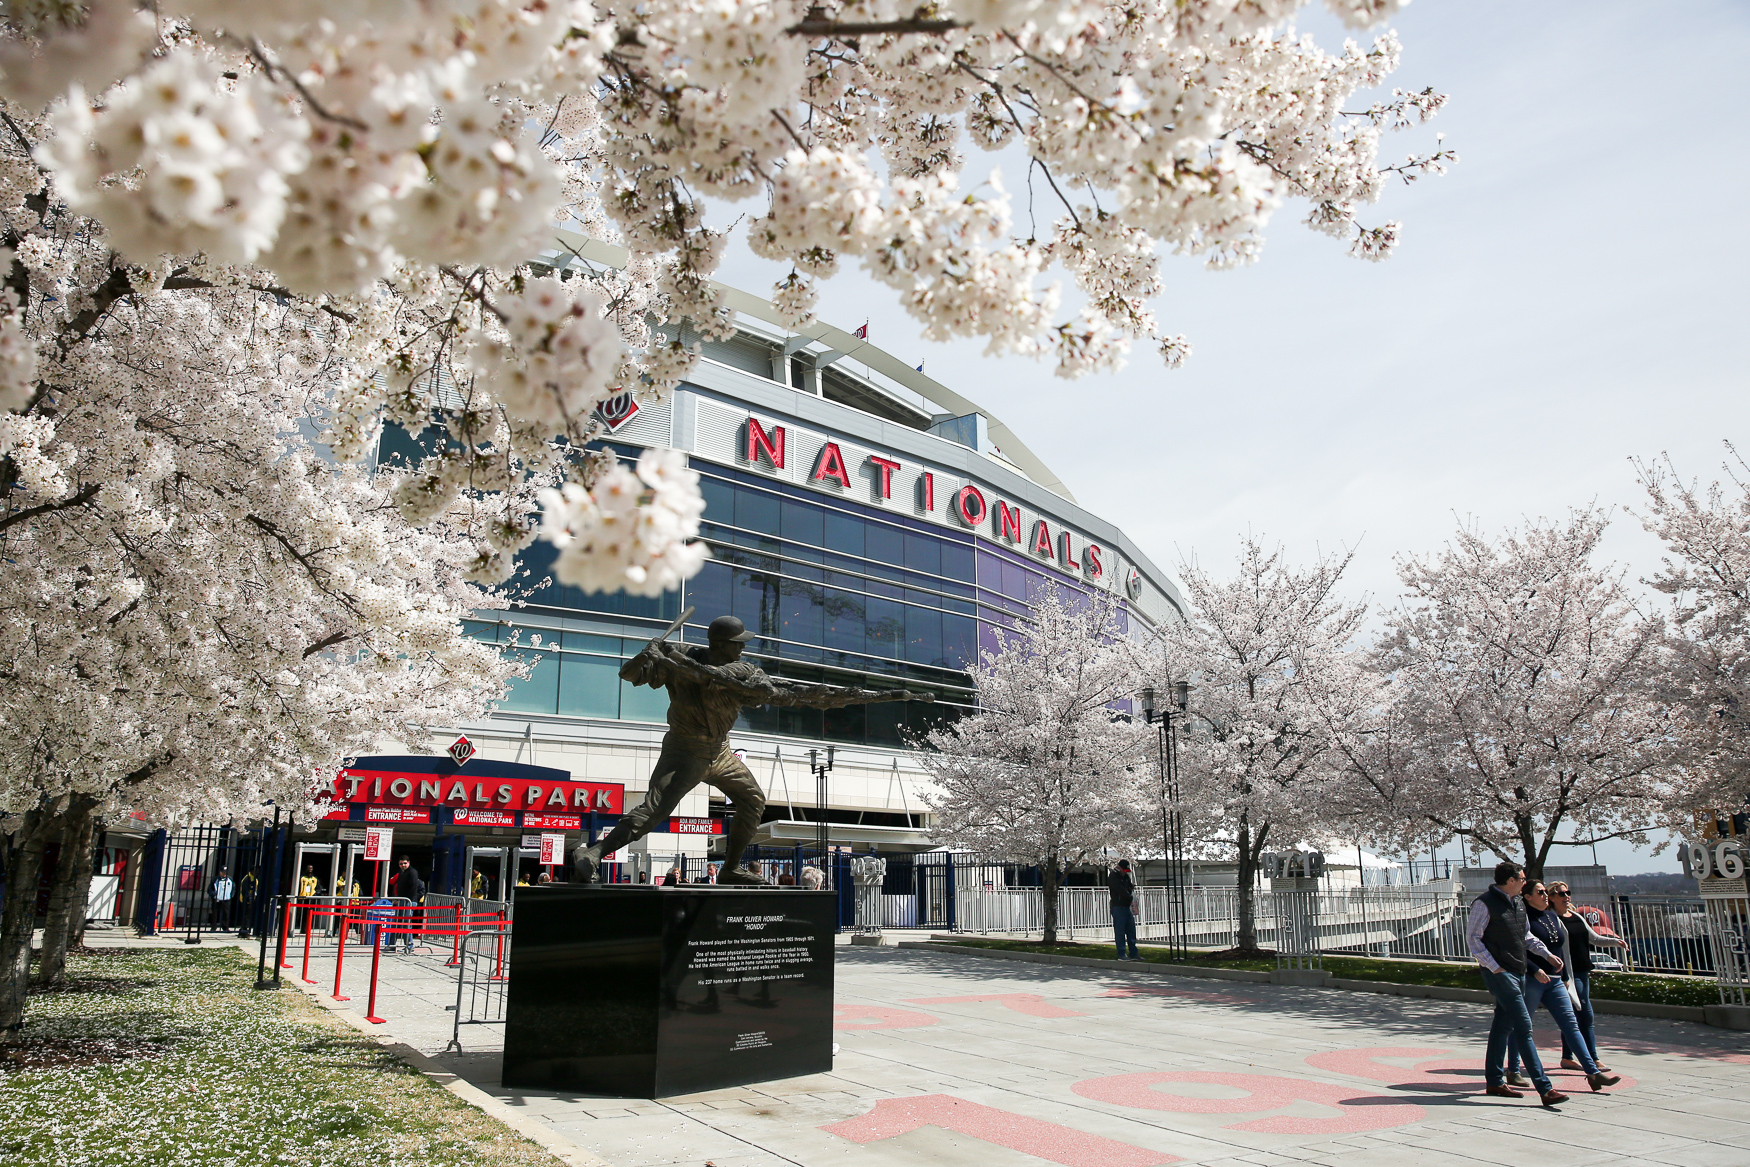 Fun fact! Nationals Park is the first LEED-certified green major professional sports stadium in the U.S.